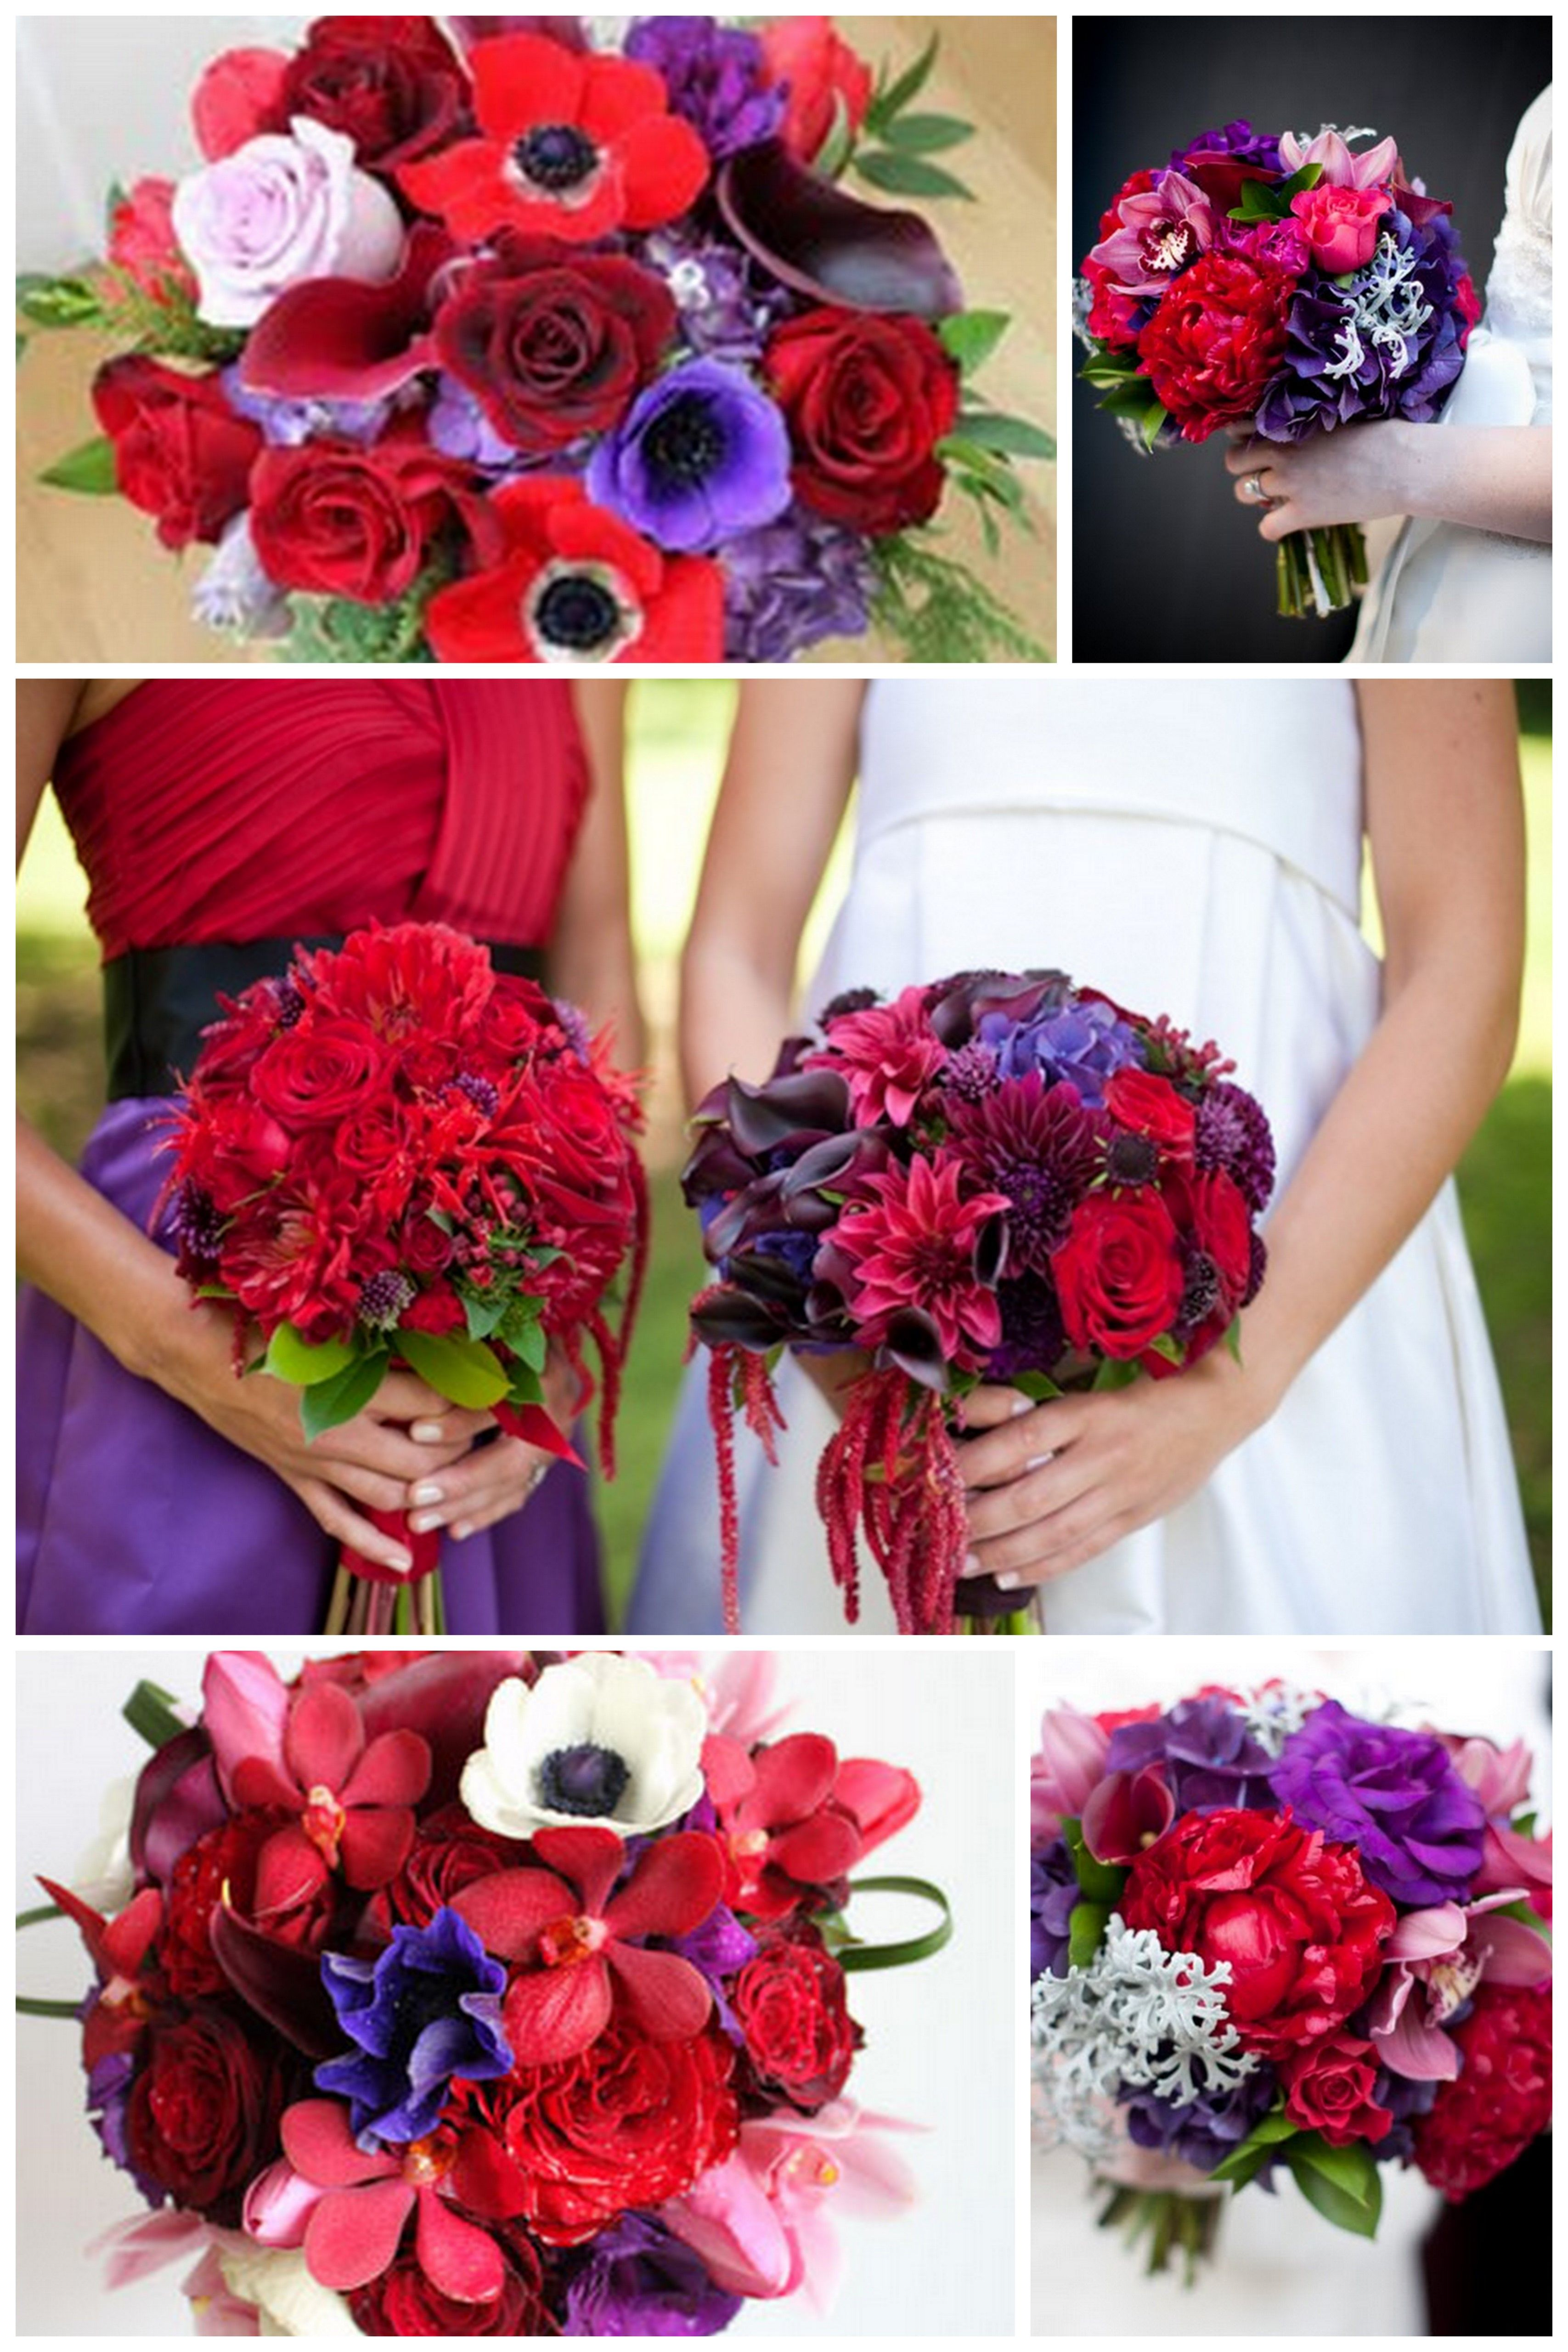 red-and-purple1.jpg 3,414×5,120 pixeles | Flores boda | Pinterest ...